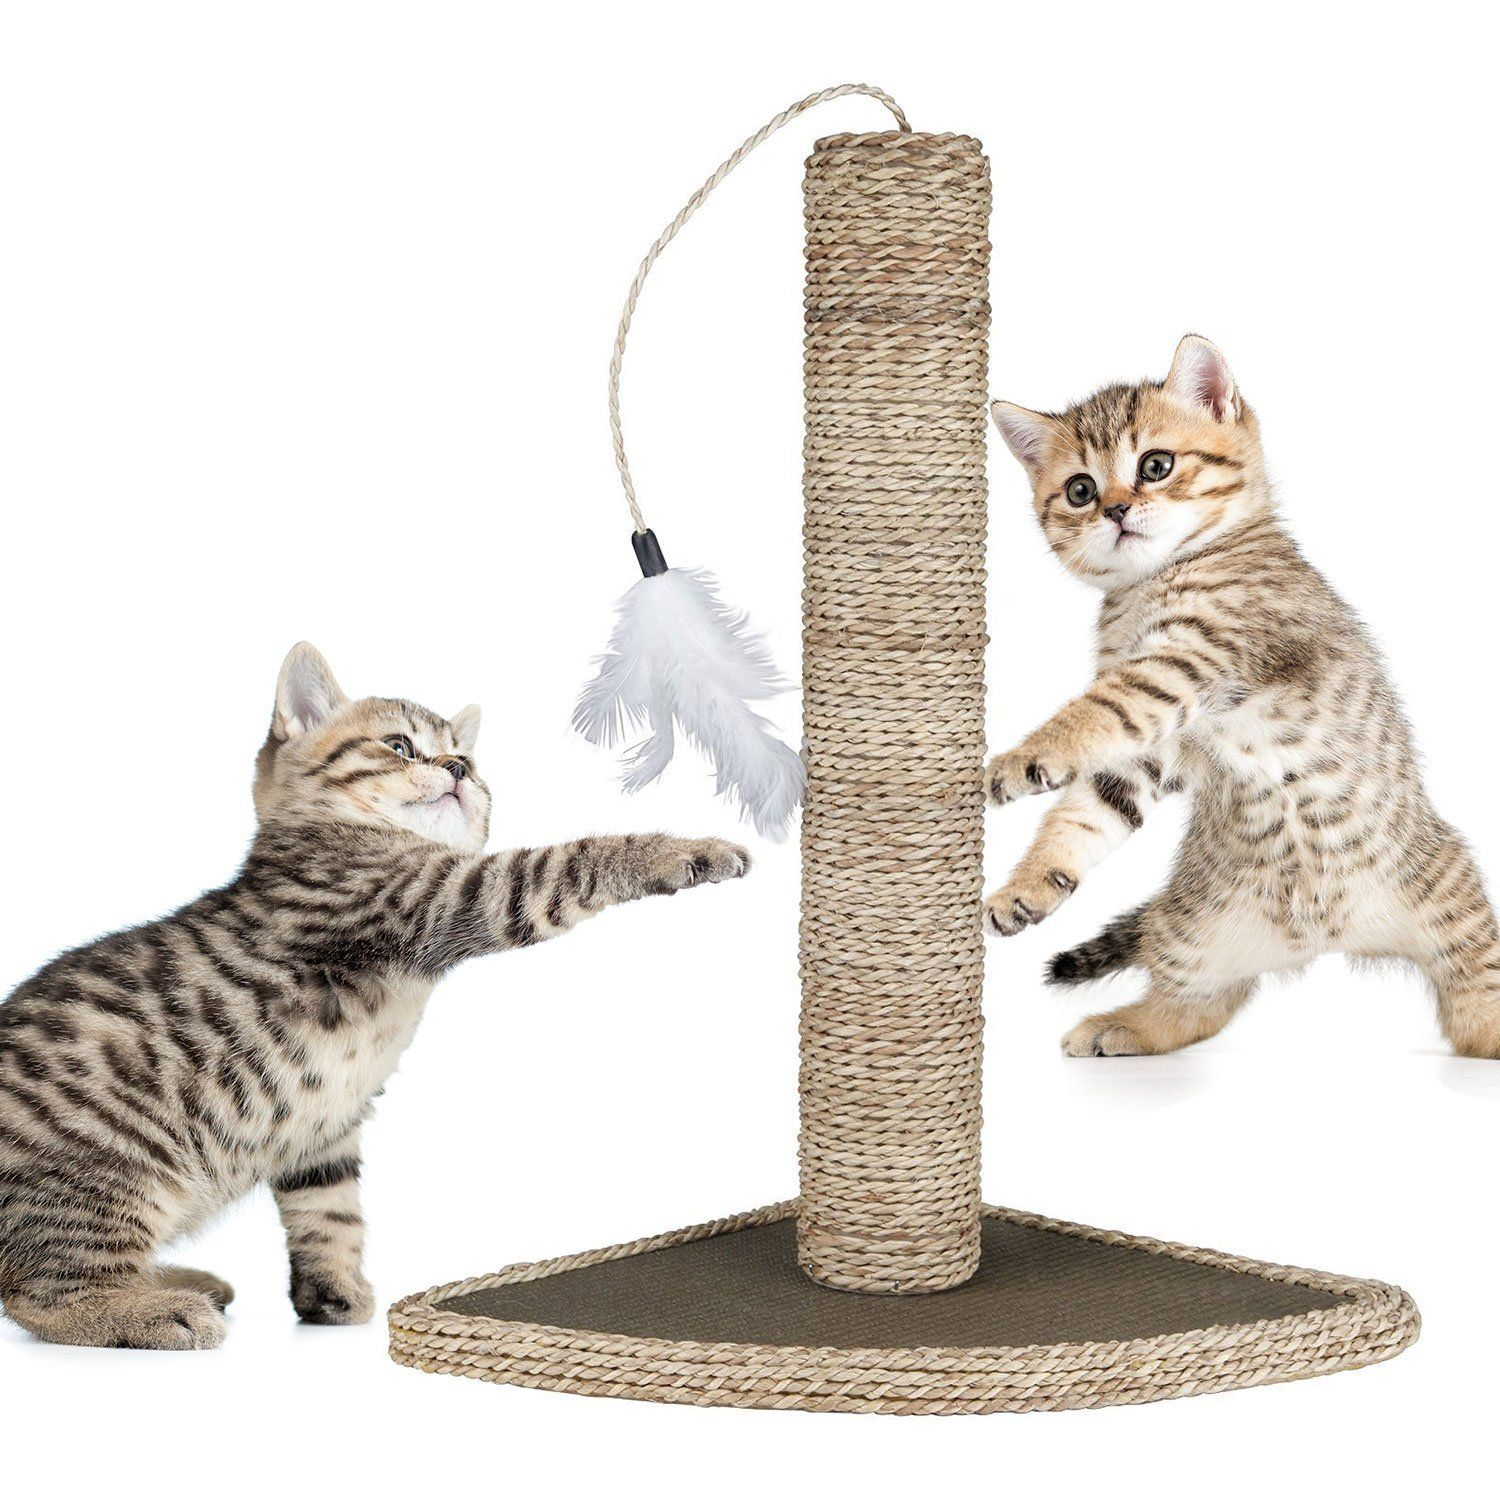 Amazon Com Mimibox Cats Toy Cat Scratching Post Natural Seagrass 19 With Feather Toy And Broad Base Dia 3 15 Intera Cat Scratching Post Pet Toys Cat Toys